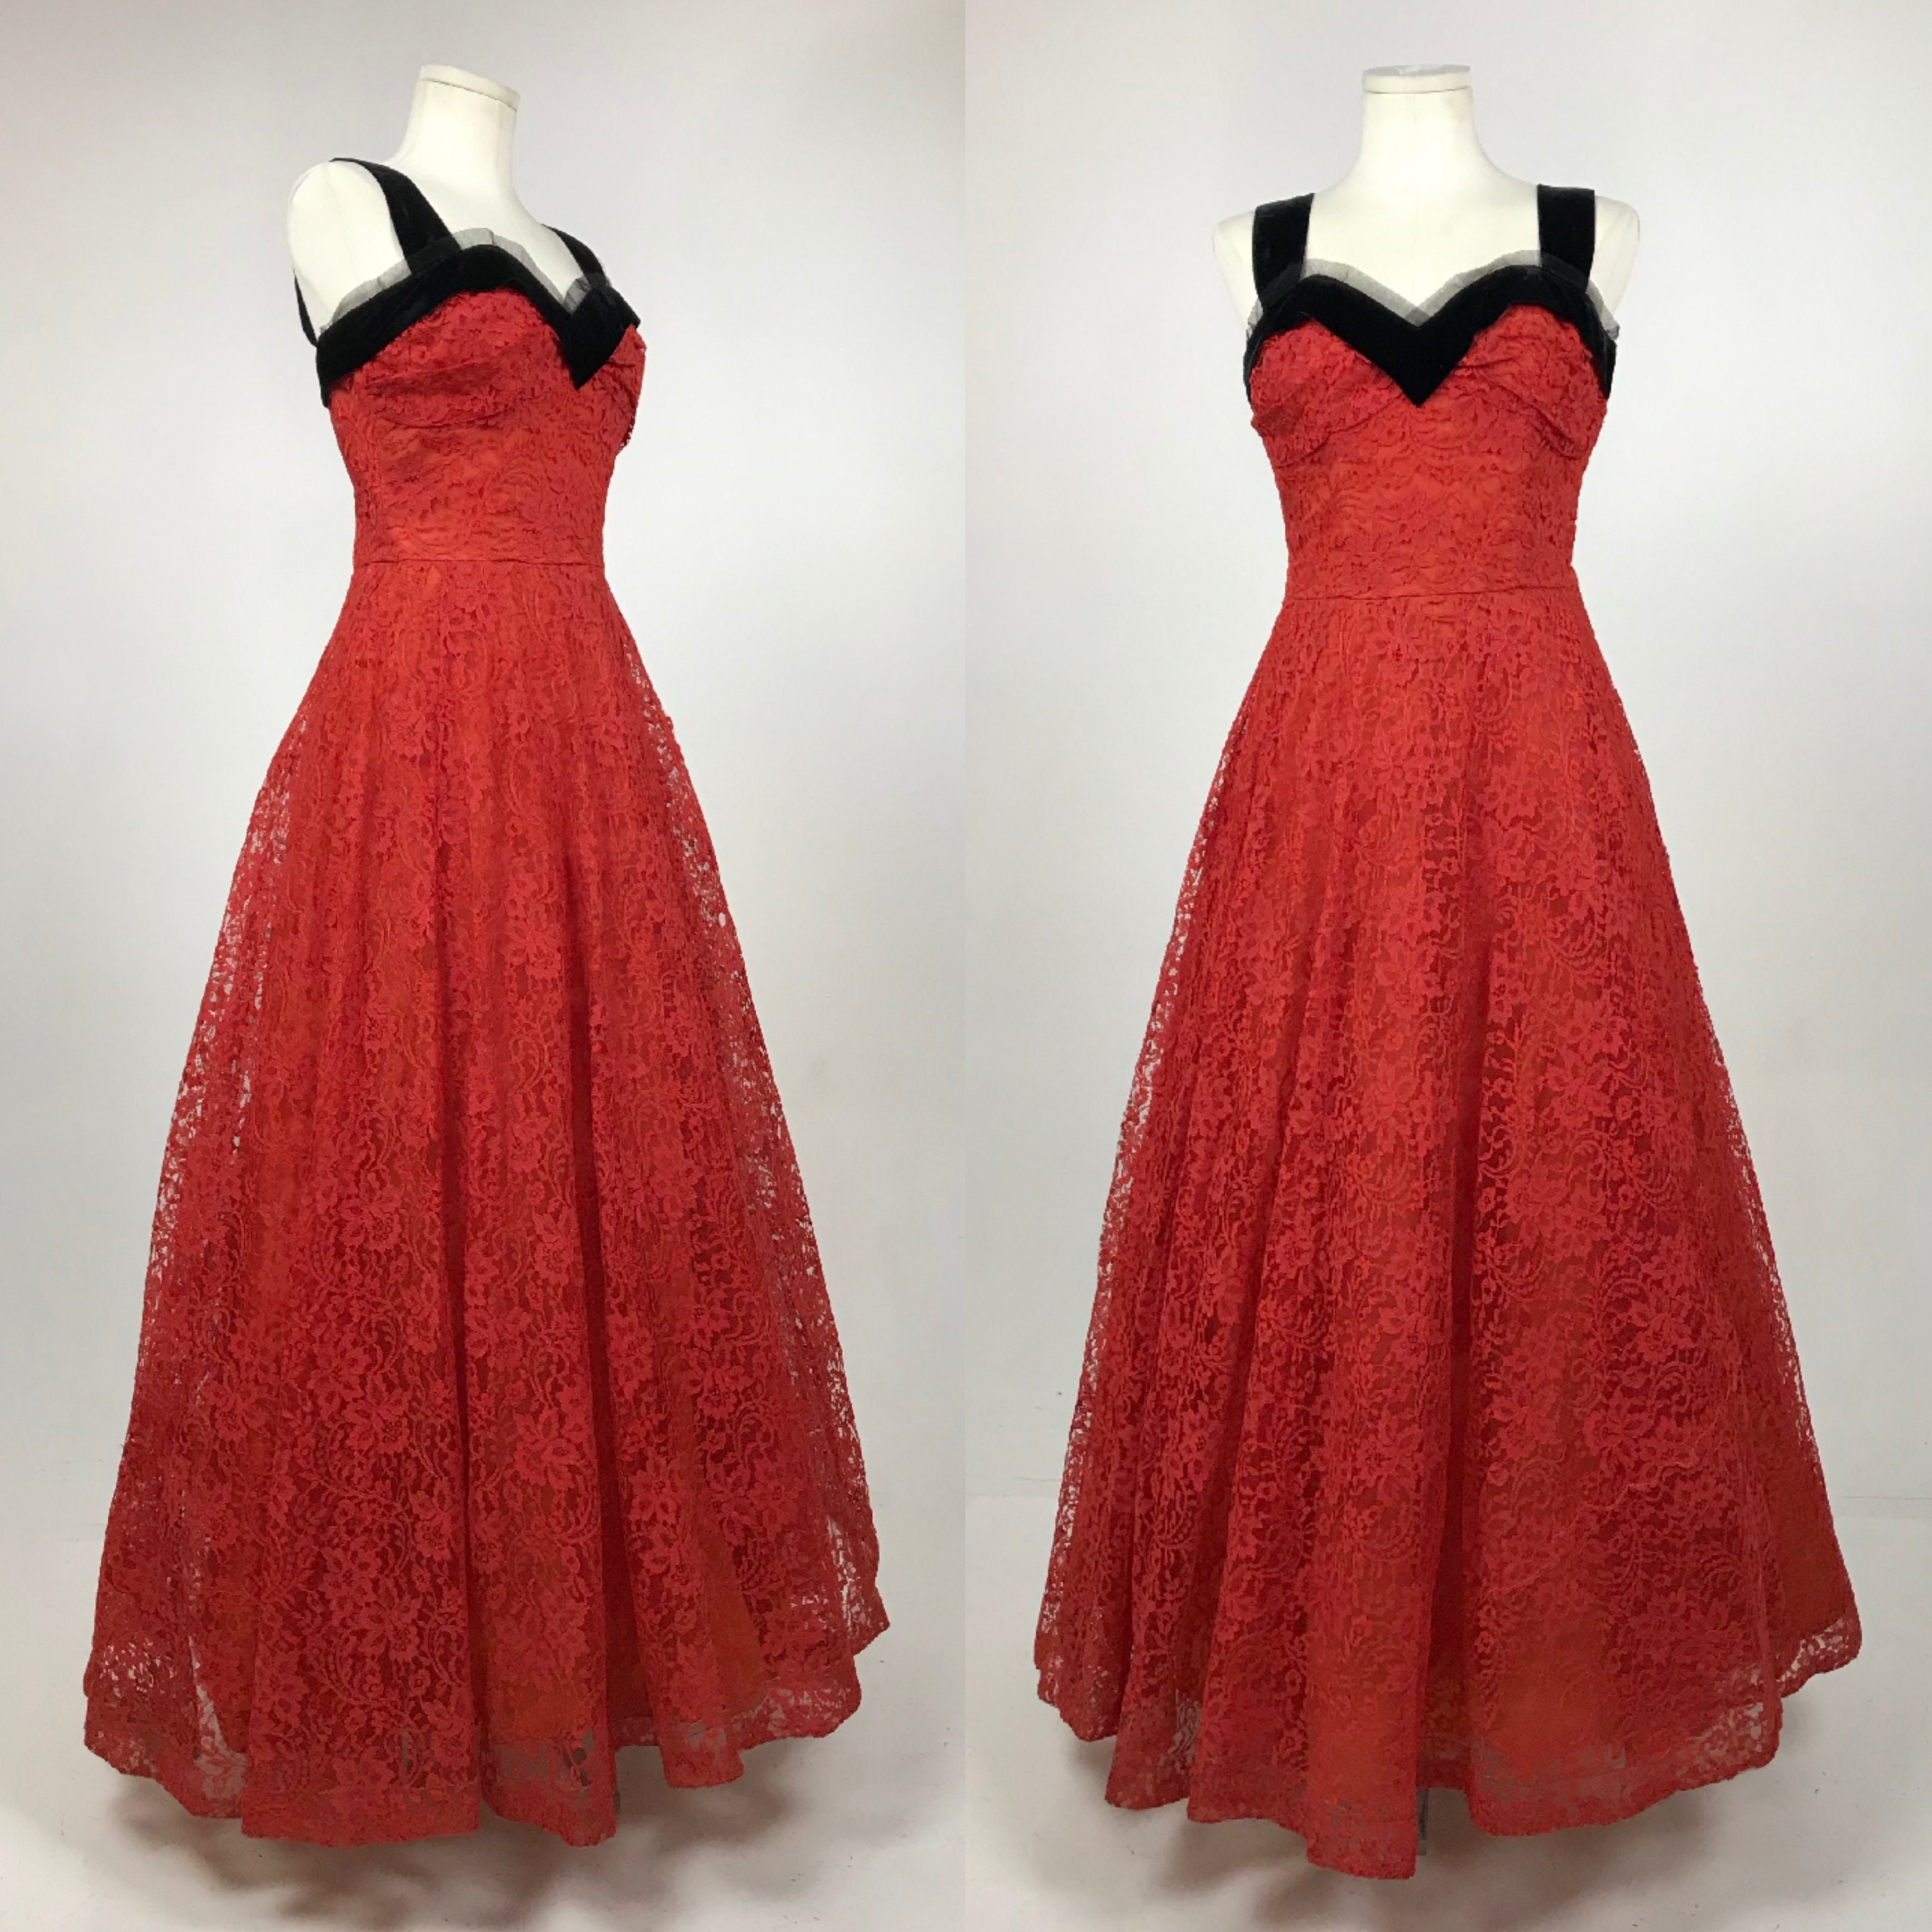 475322fef Vintage 1950 s Red Chantilly Lace Prom Dress - 50 s Red Wedding ...